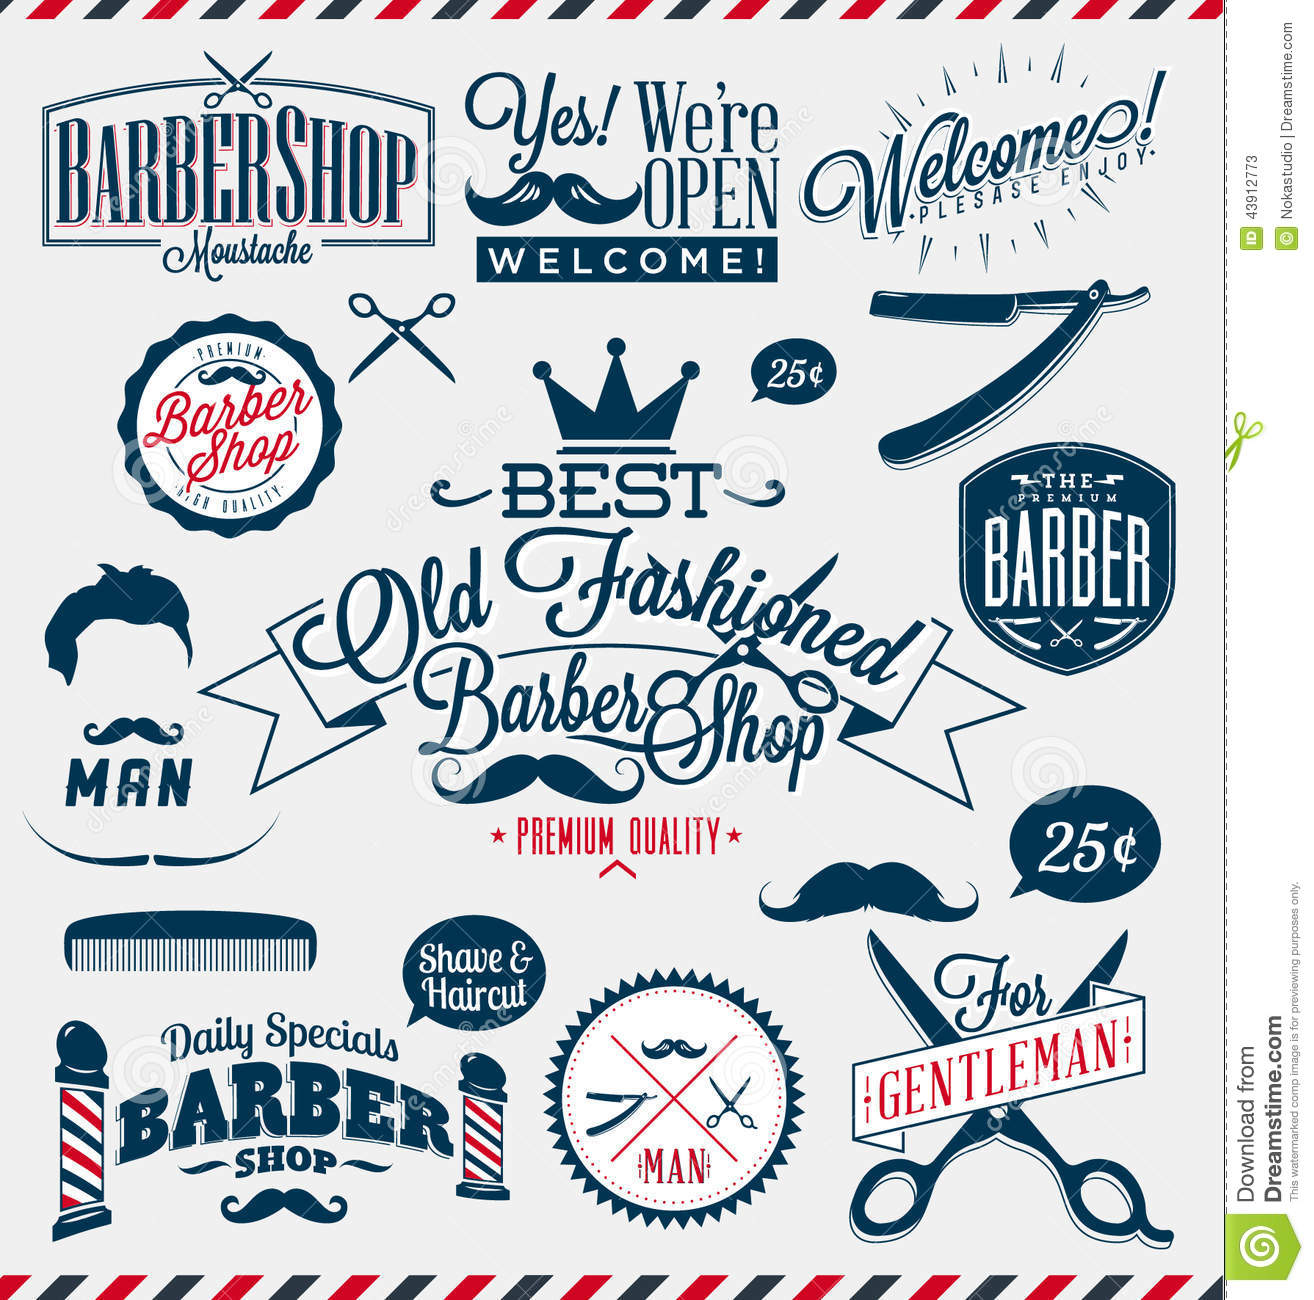 Antique barber shop sign - Barber Shop Or Hairdresser Signs Stock Photos